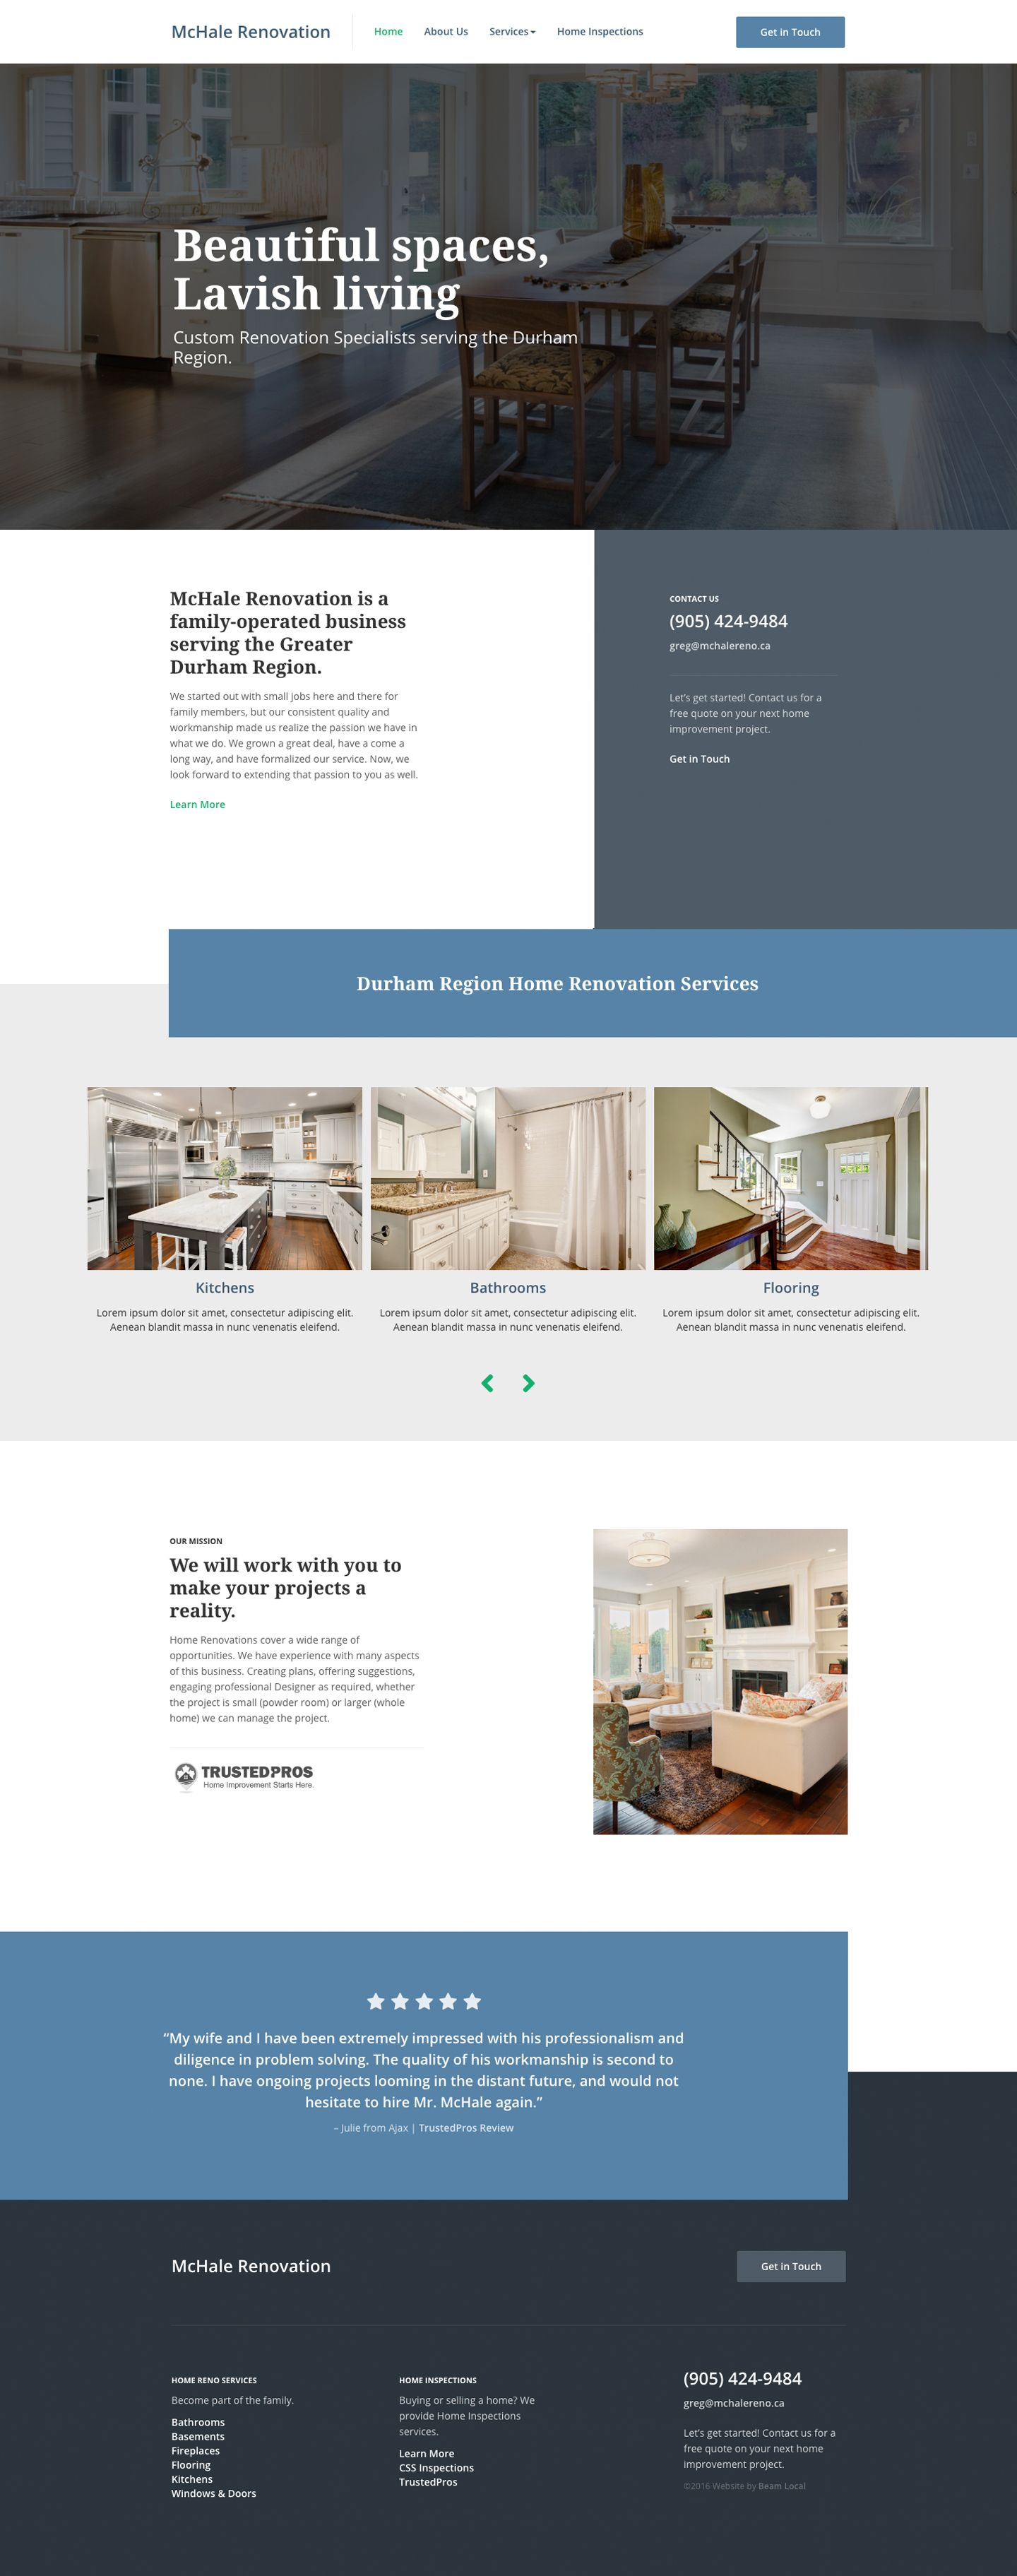 Looking For Top Trends In Contractor Website Designs Want To Know What Makes A Good Construction Business Website Design Squarespace Design Simple Web Design